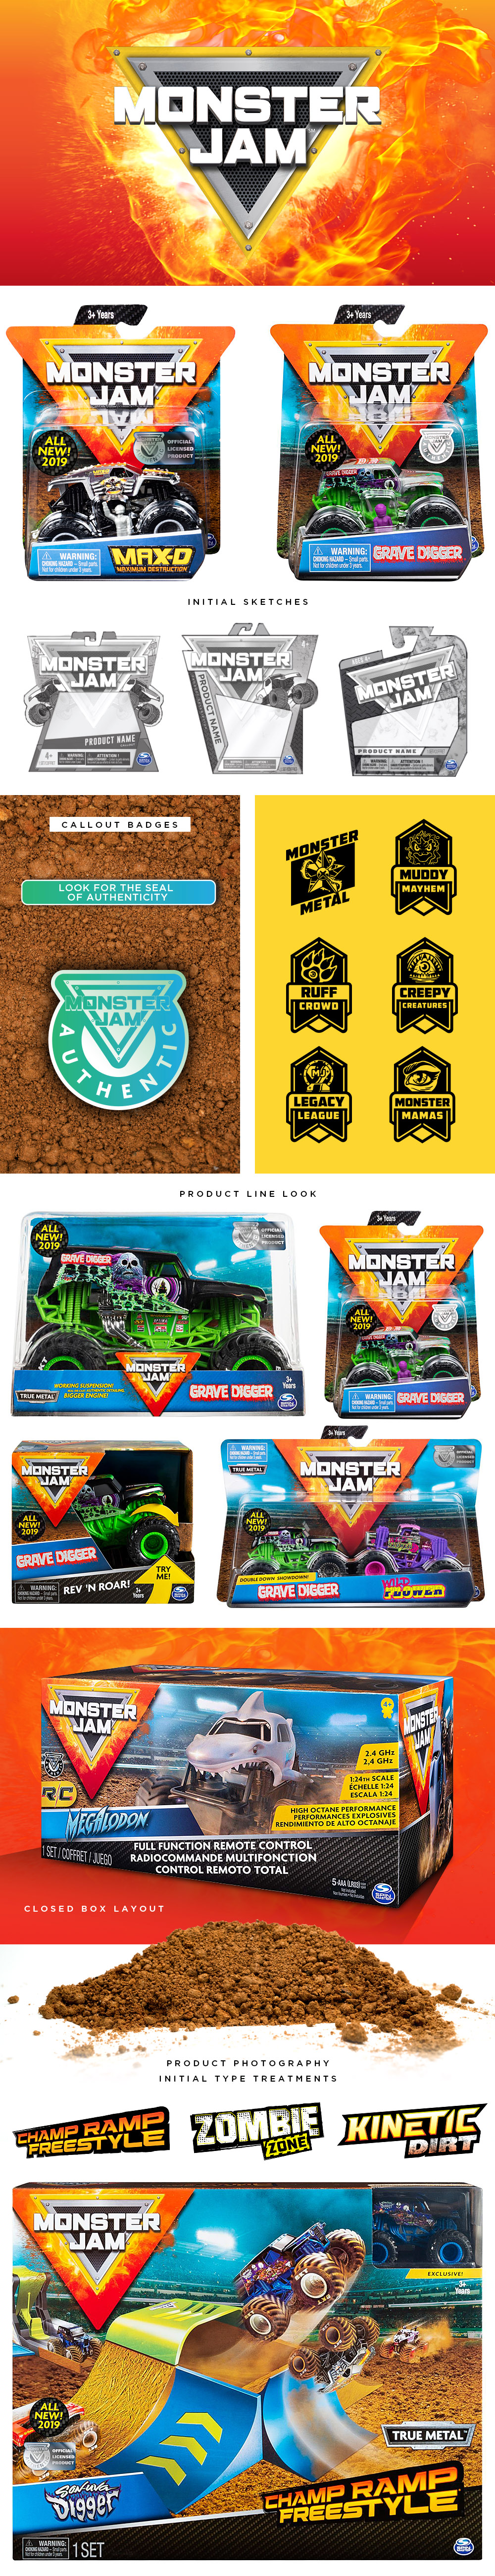 MonsterJam_Project_01.jpg